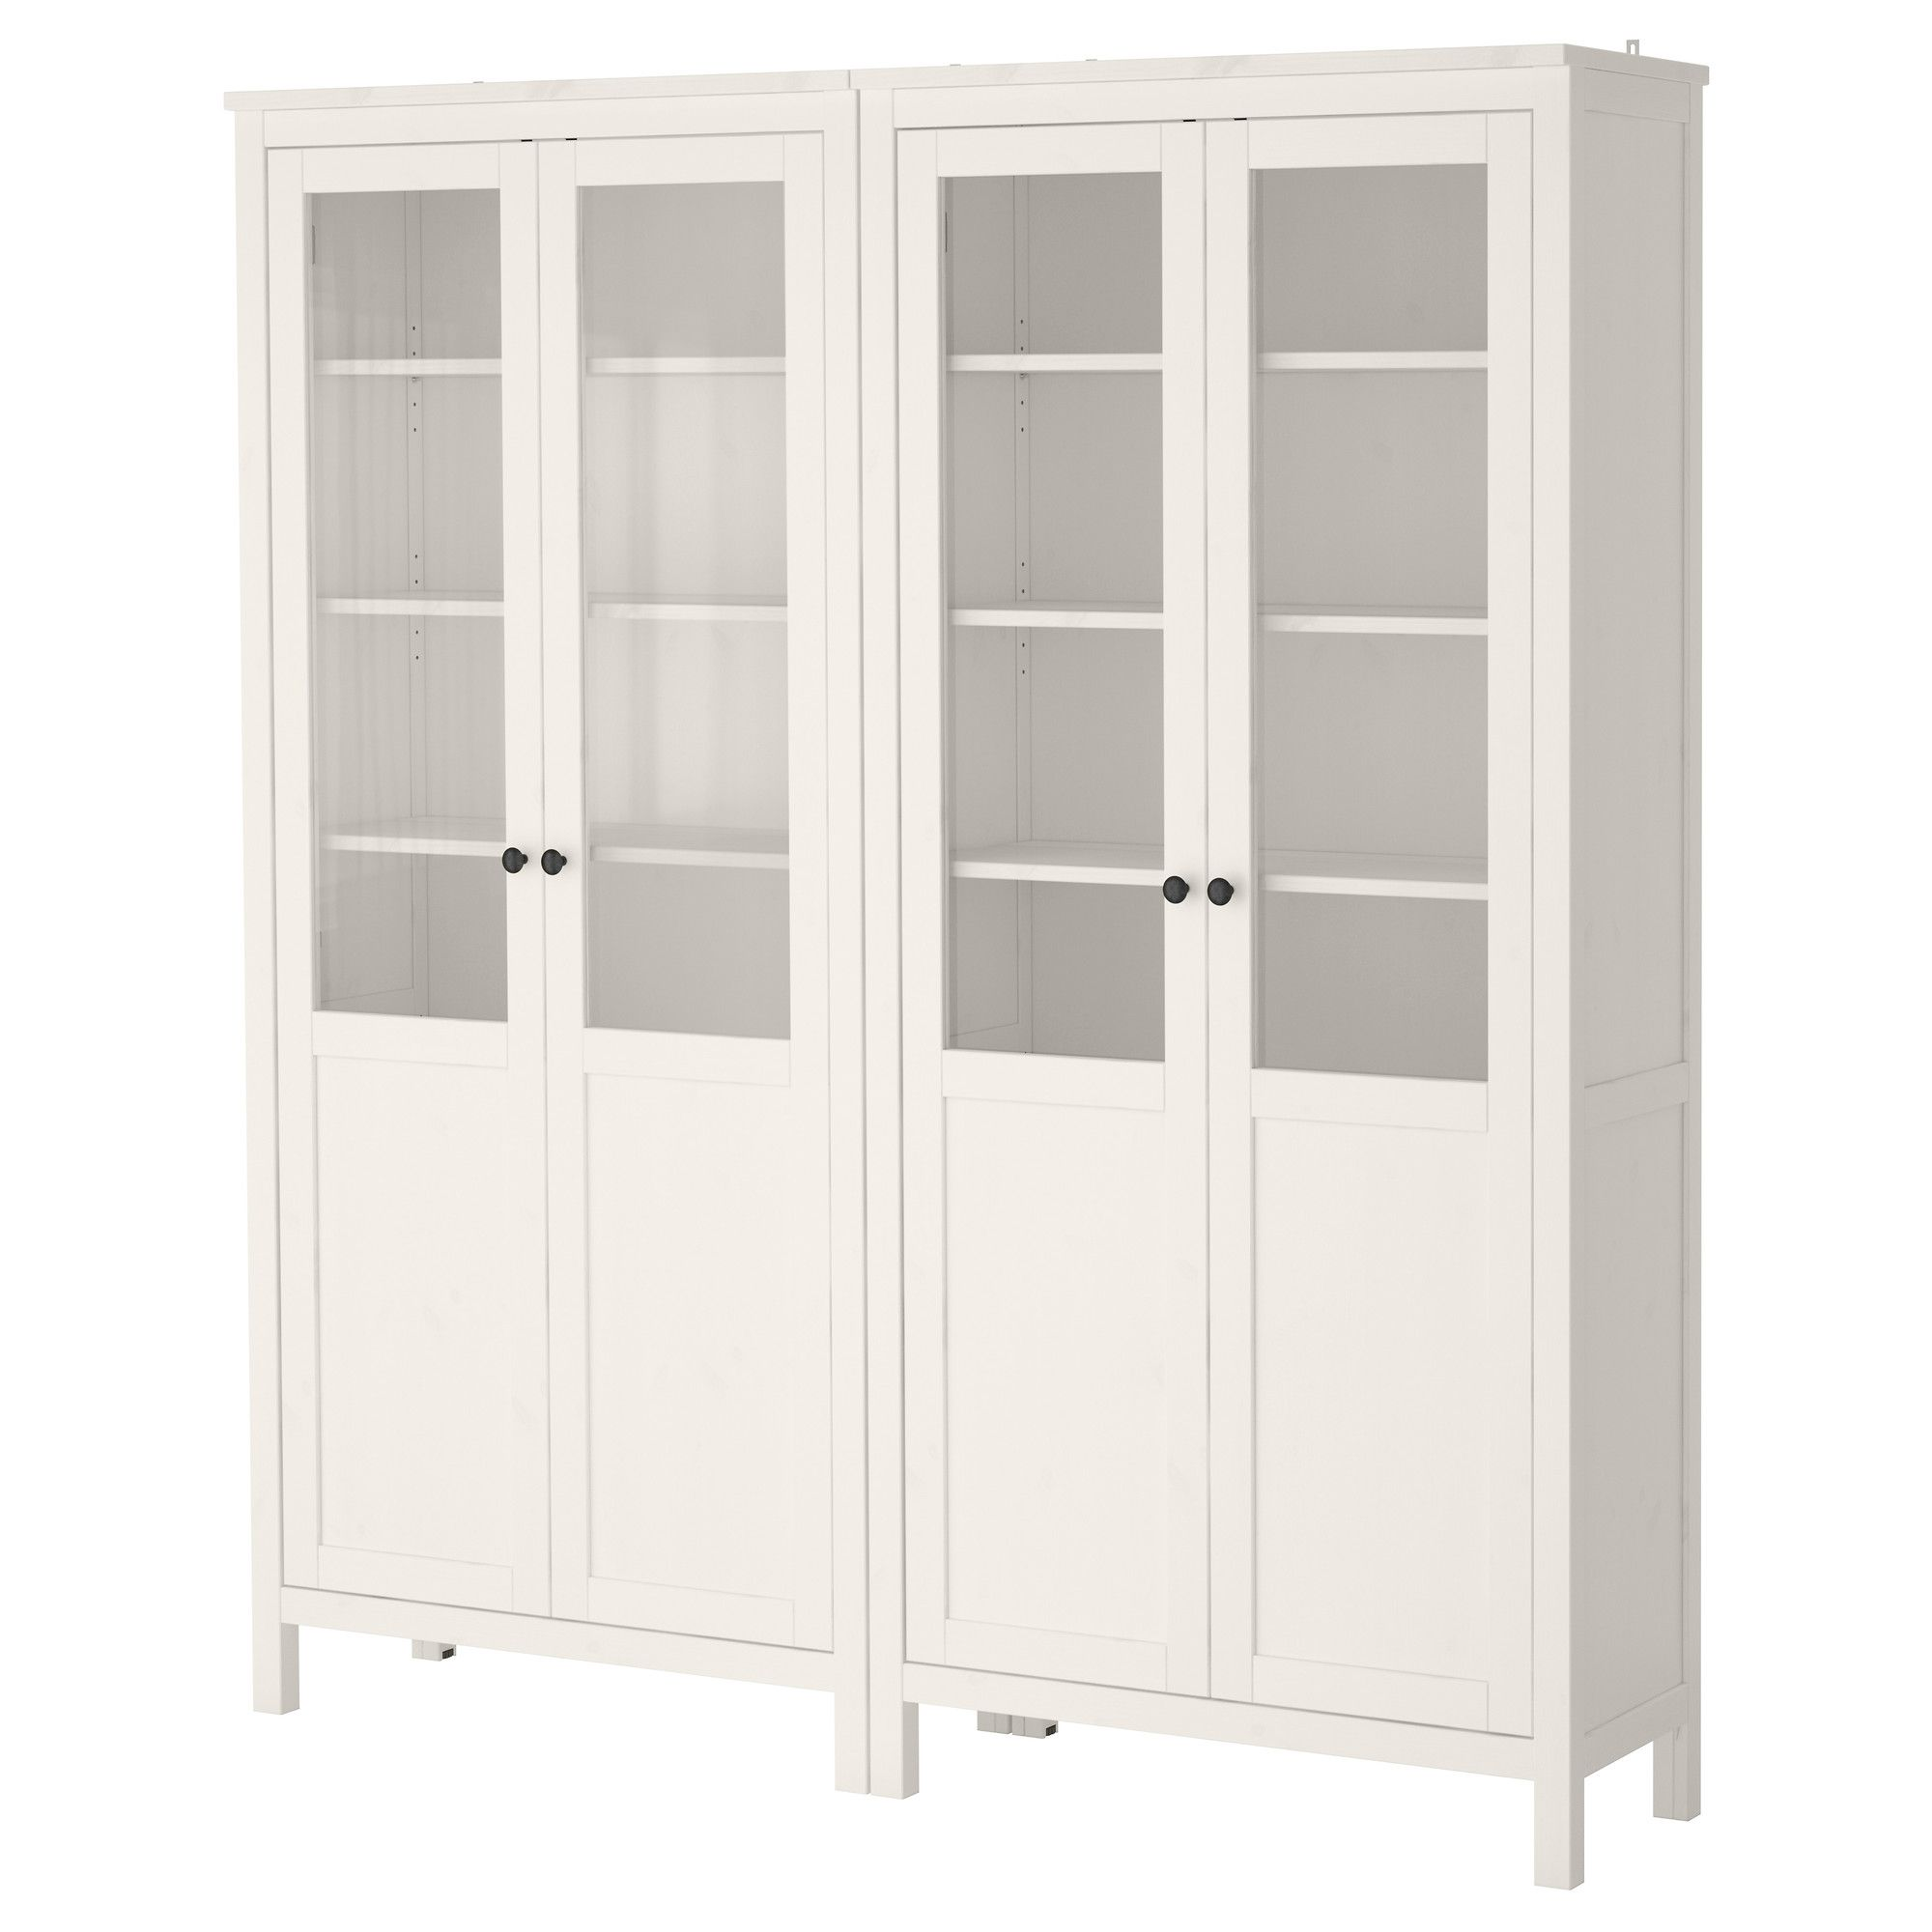 Ikea dining room storage - Best Ikea Kitchen Storagesewing Room